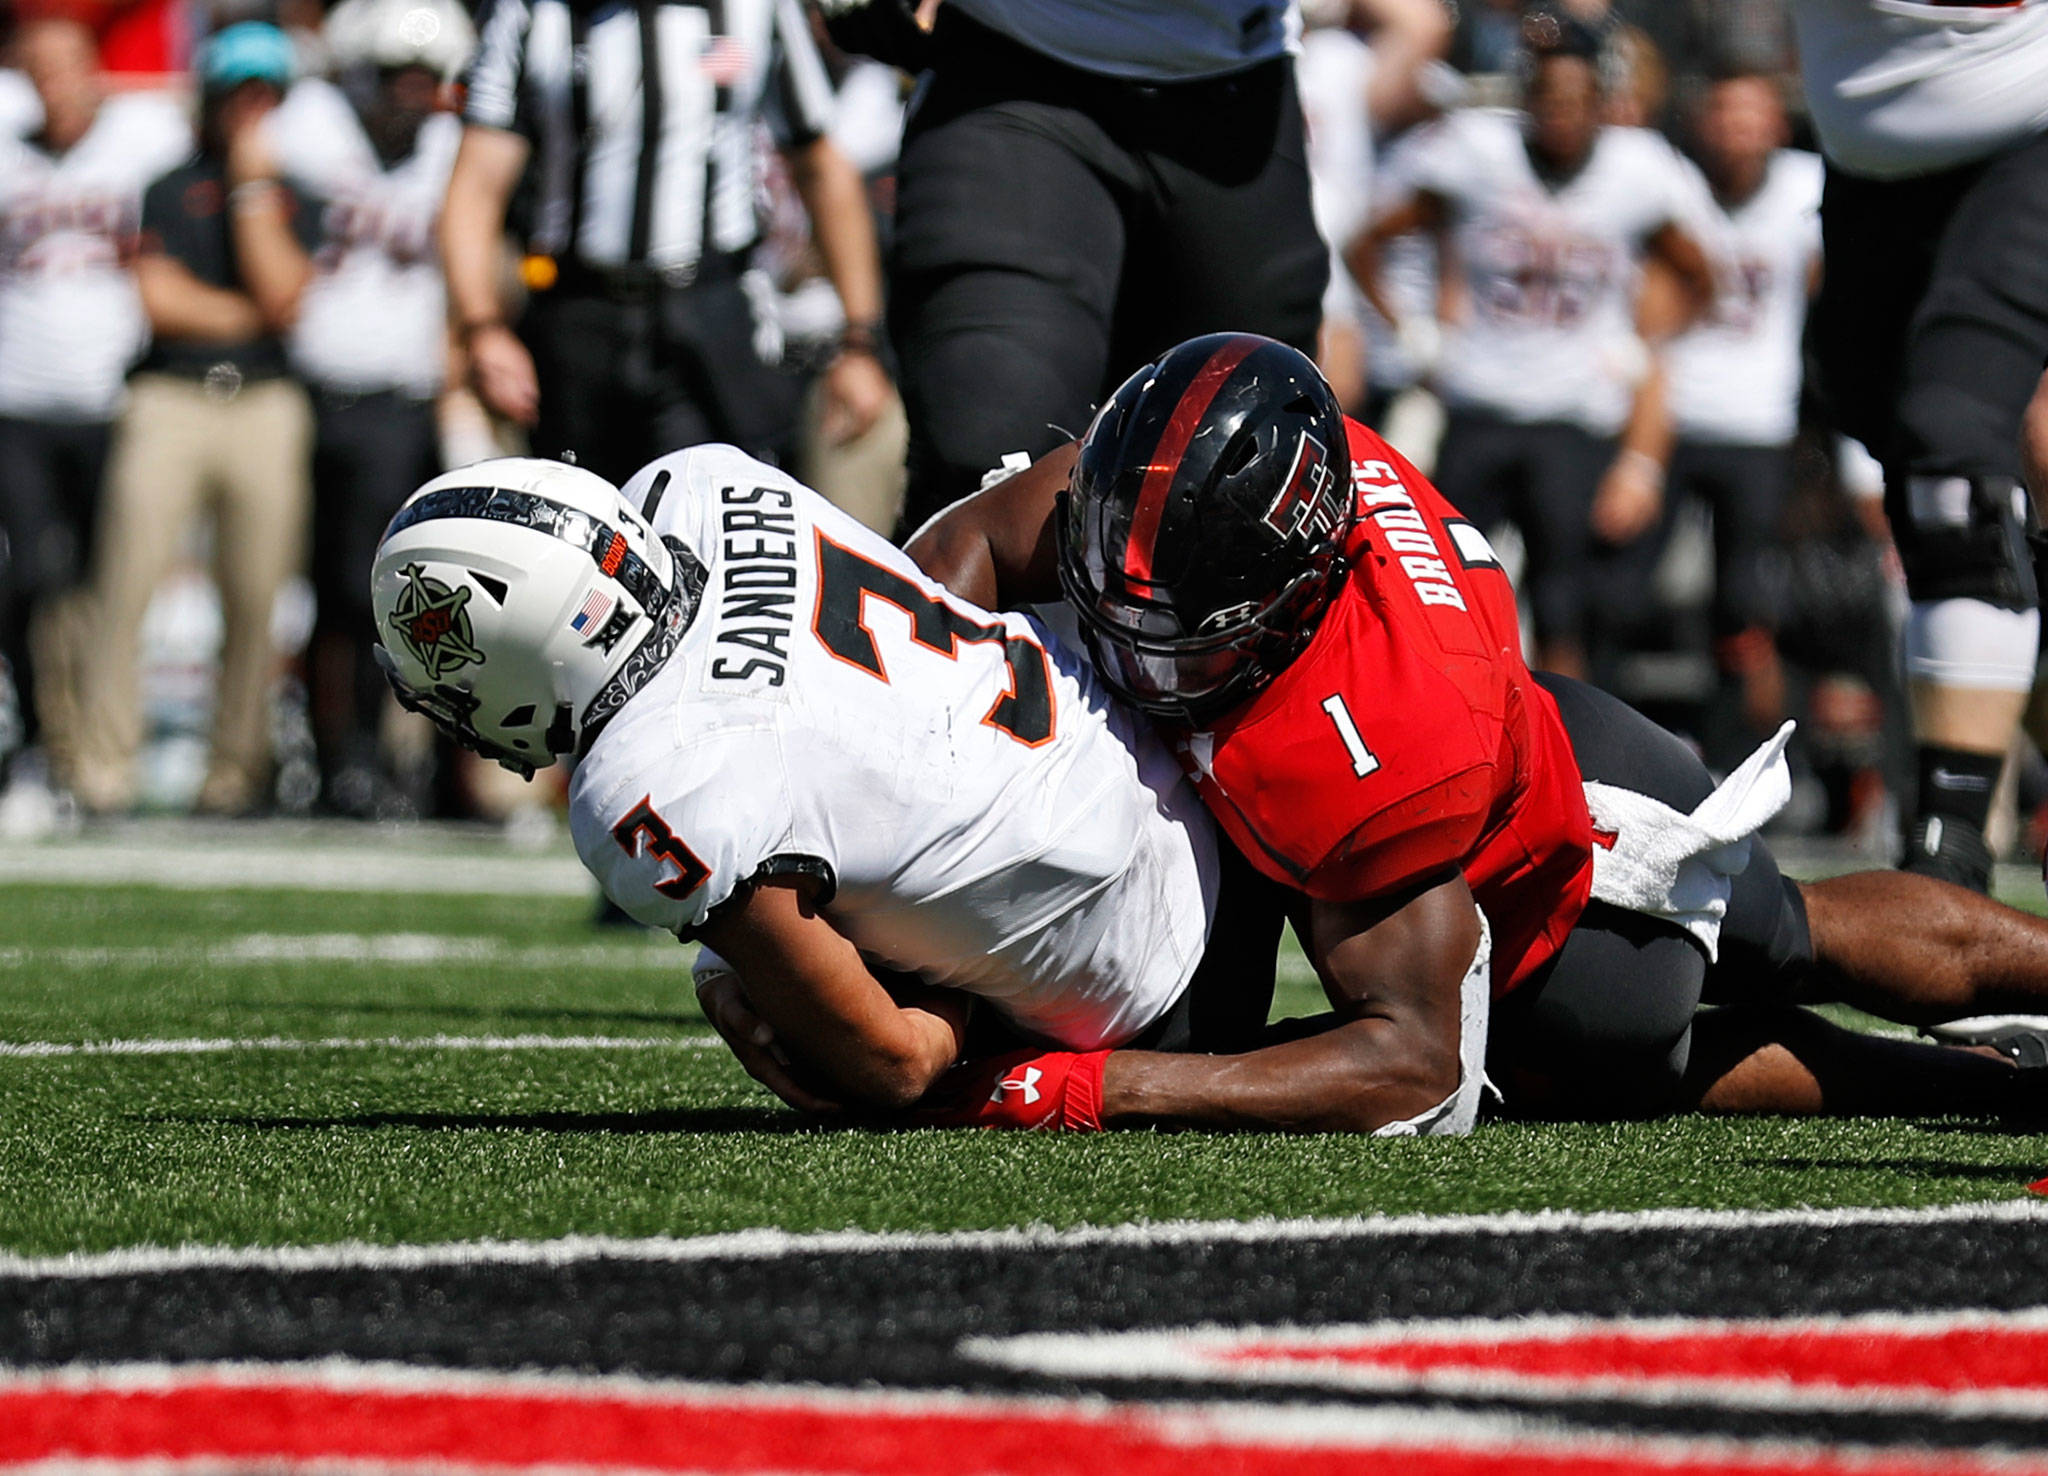 Texas Tech's Jordyn Brooks (1) tackles Oklahoma State's Spencer Sanders to stop a two-point conversion during the second half of a game Oct. 5, 2019, in Lubbock, Texas. (AP Photo/Brad Tollefson)